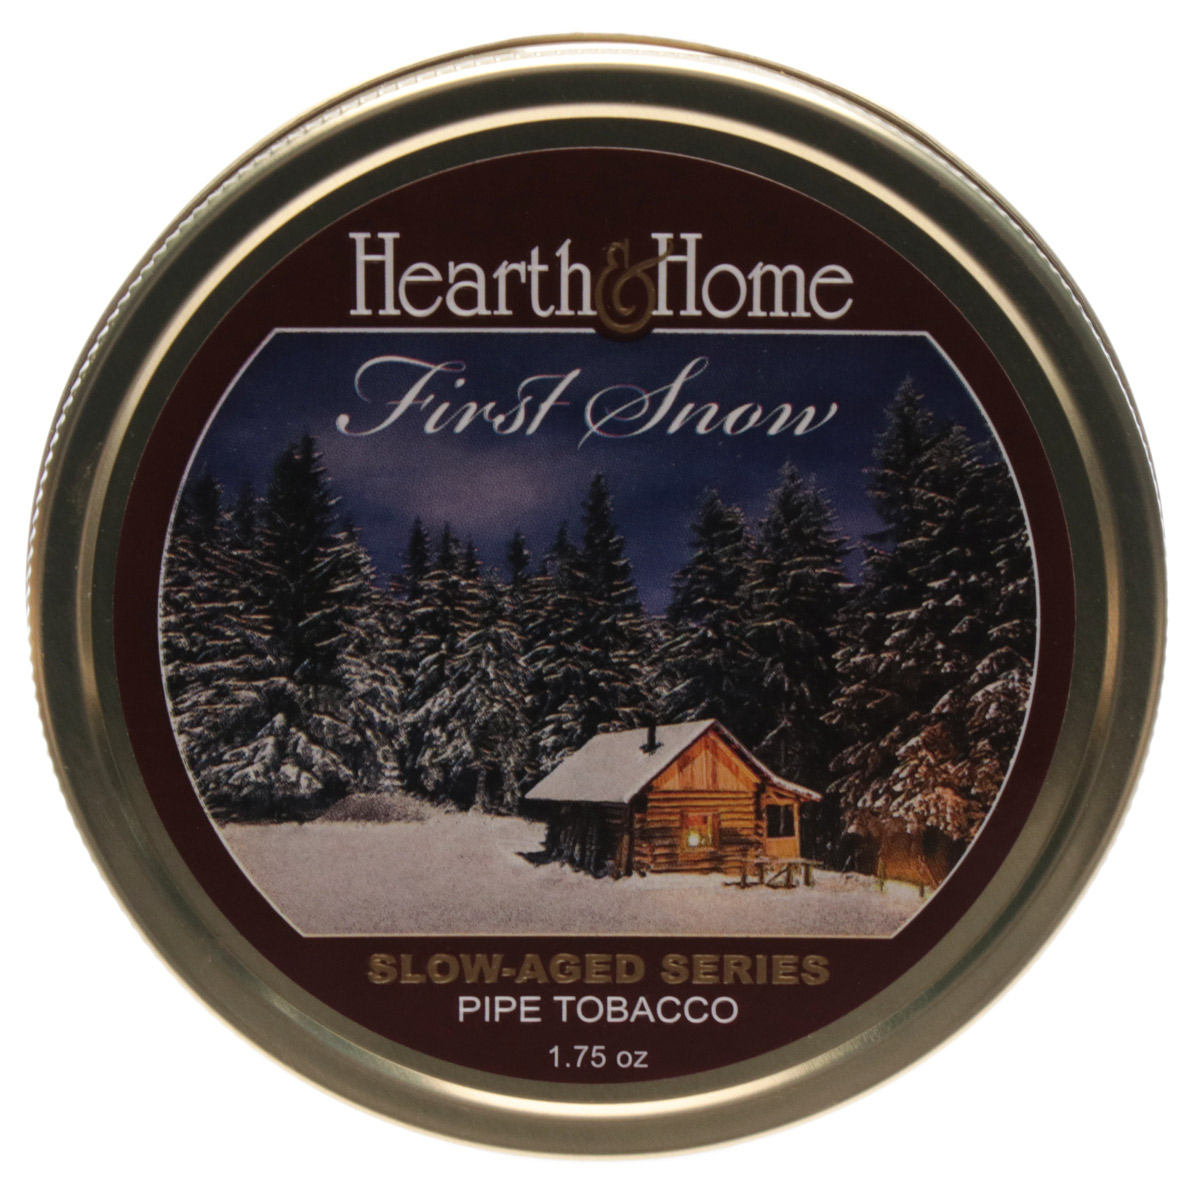 Hearth and Home Slow-Aged First Snow 1.75oz